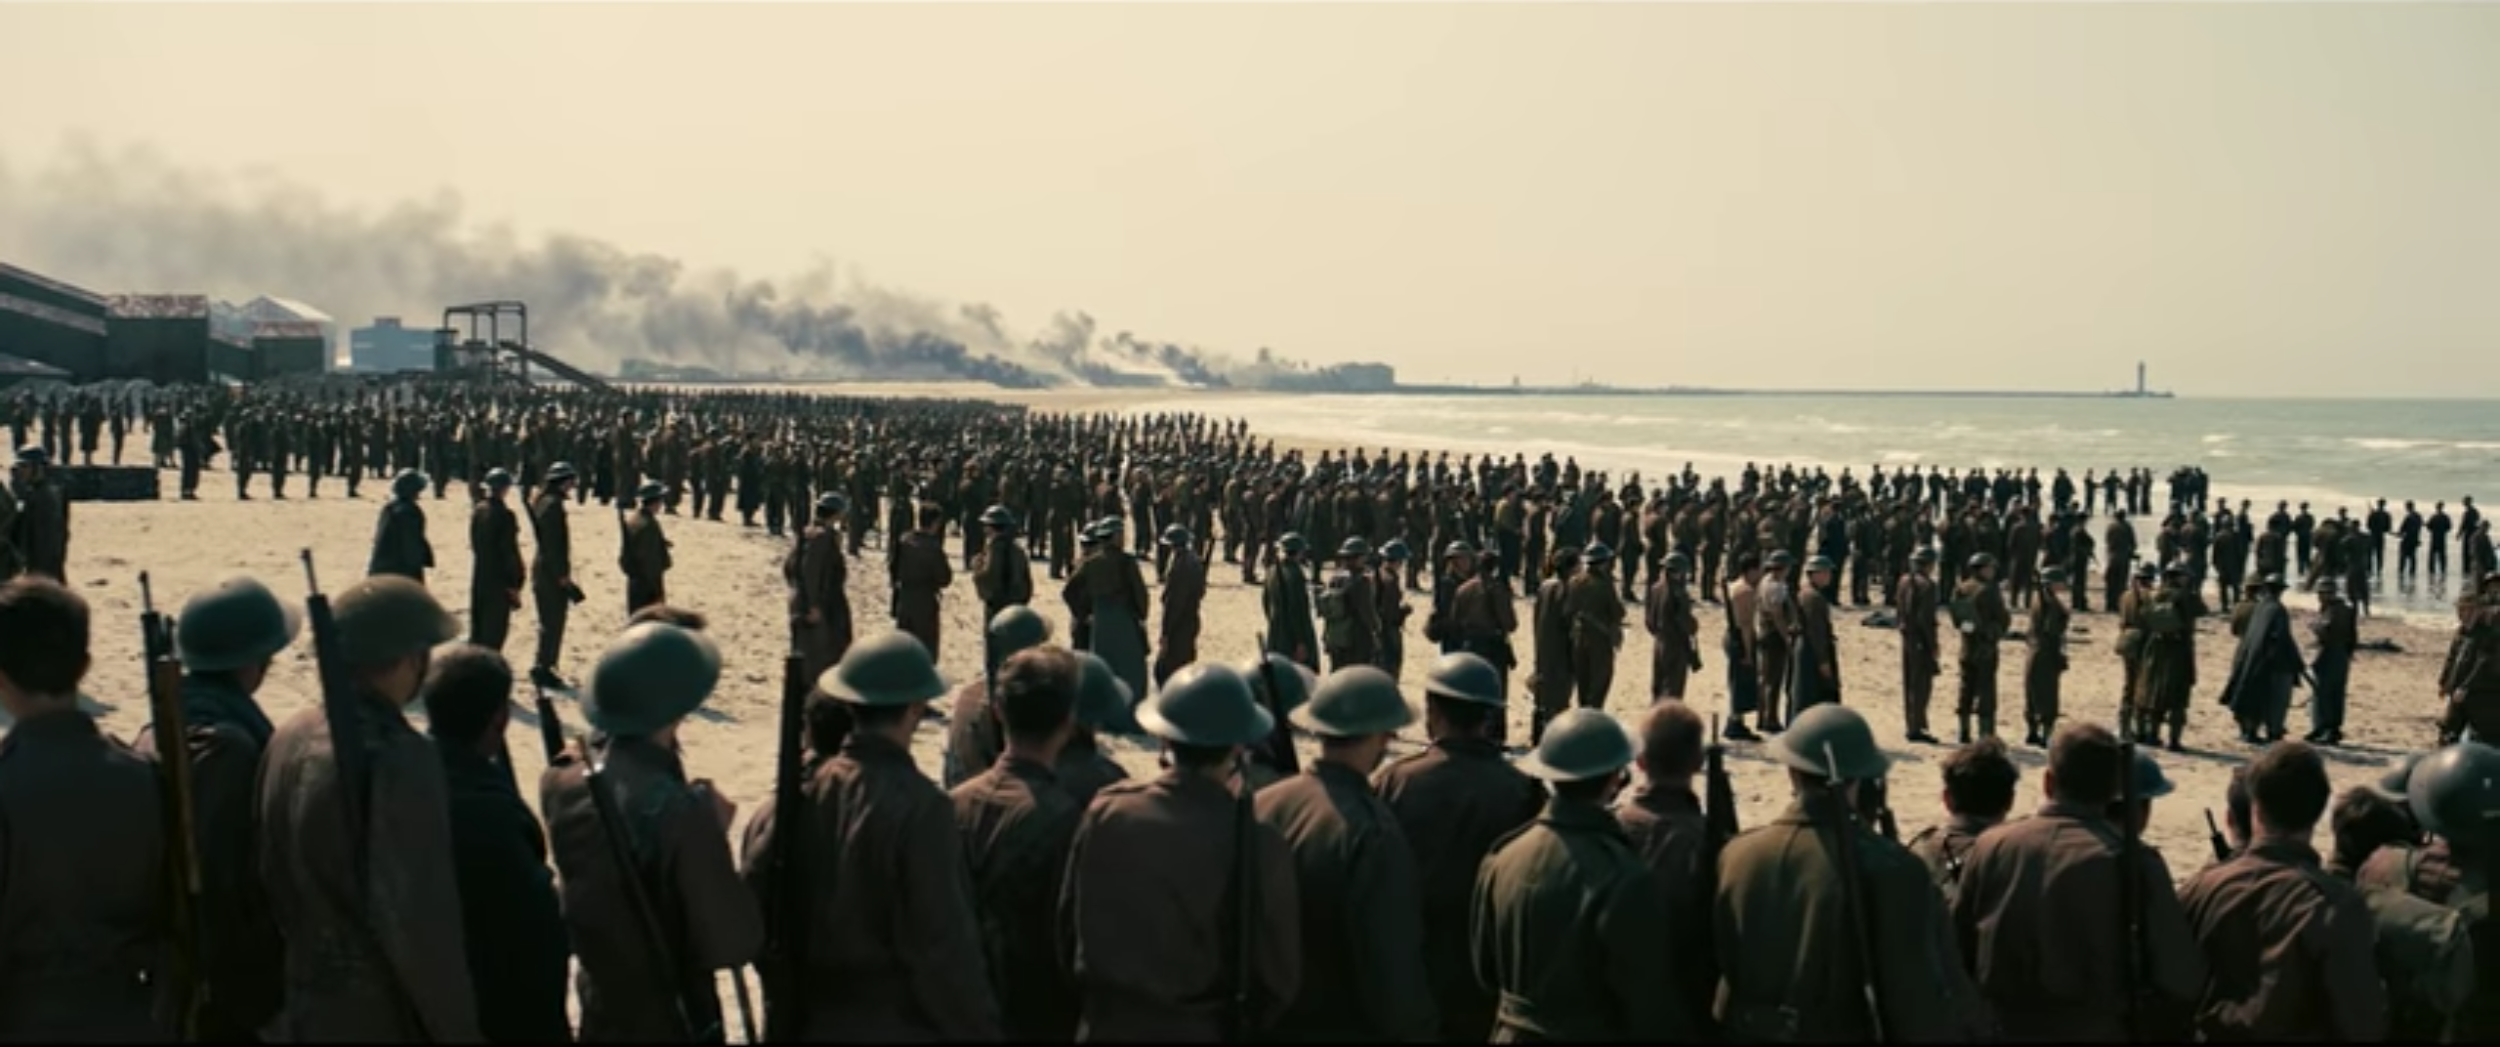 Dunkirk Soldiers.png